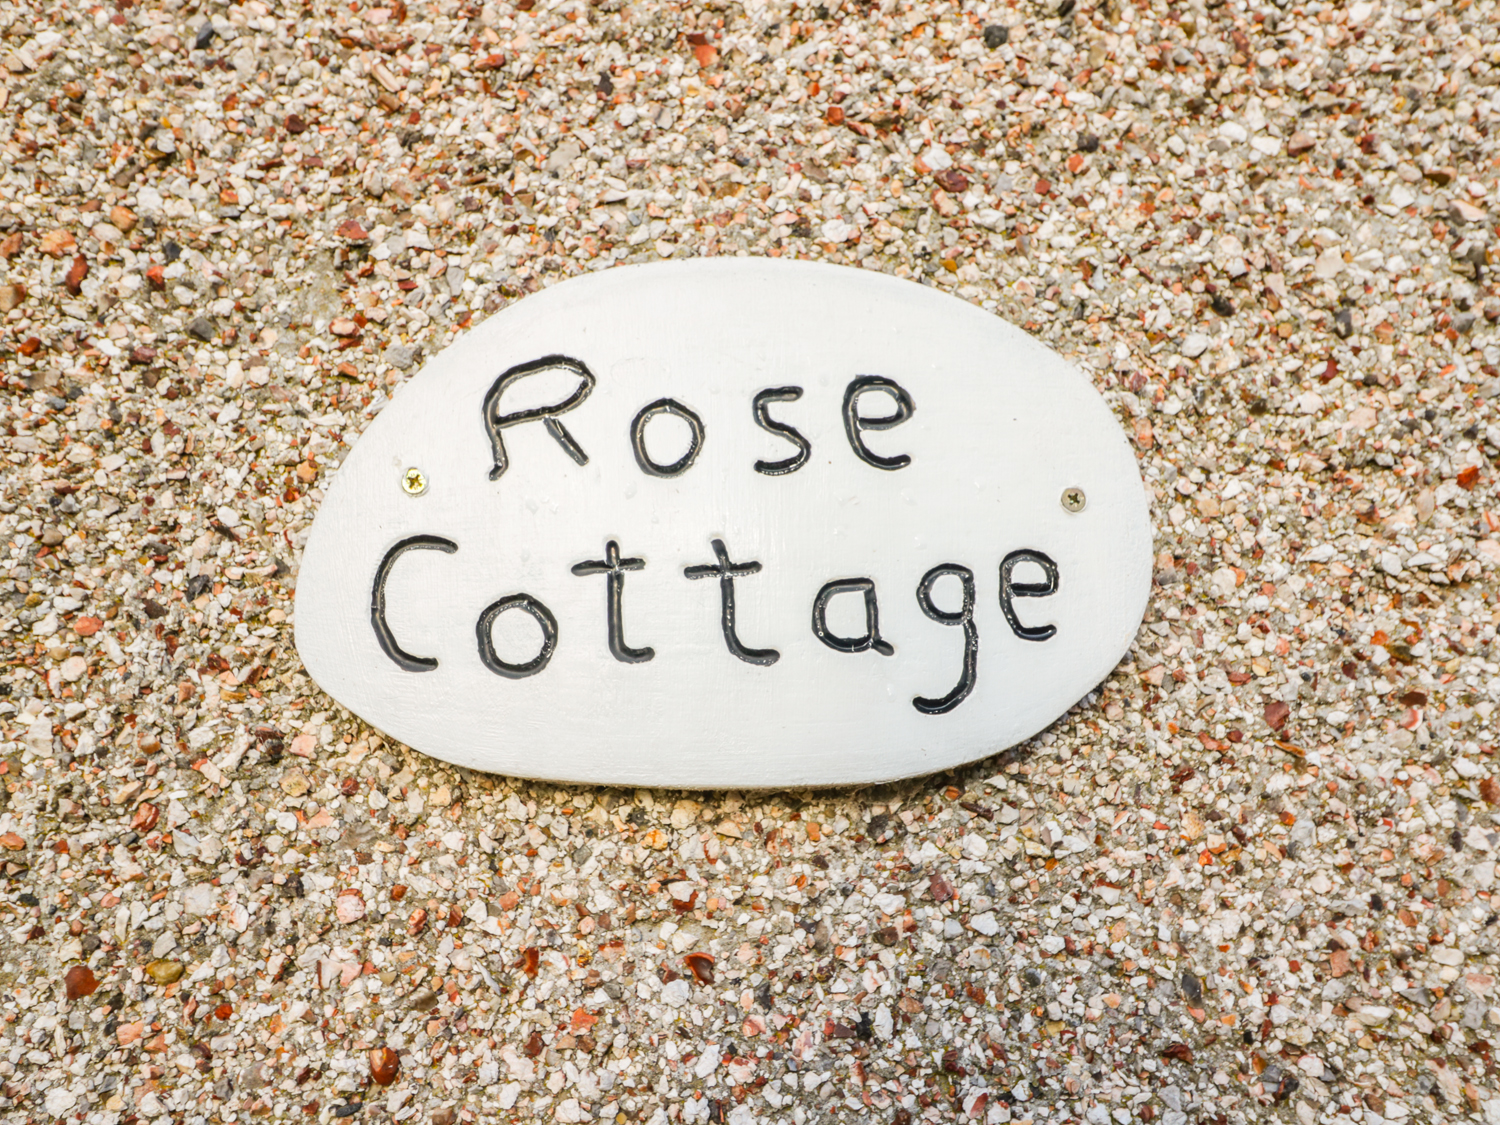 Miraculous Rose Cottage Edzell Scotland Alpha Holiday Lettings Download Free Architecture Designs Scobabritishbridgeorg